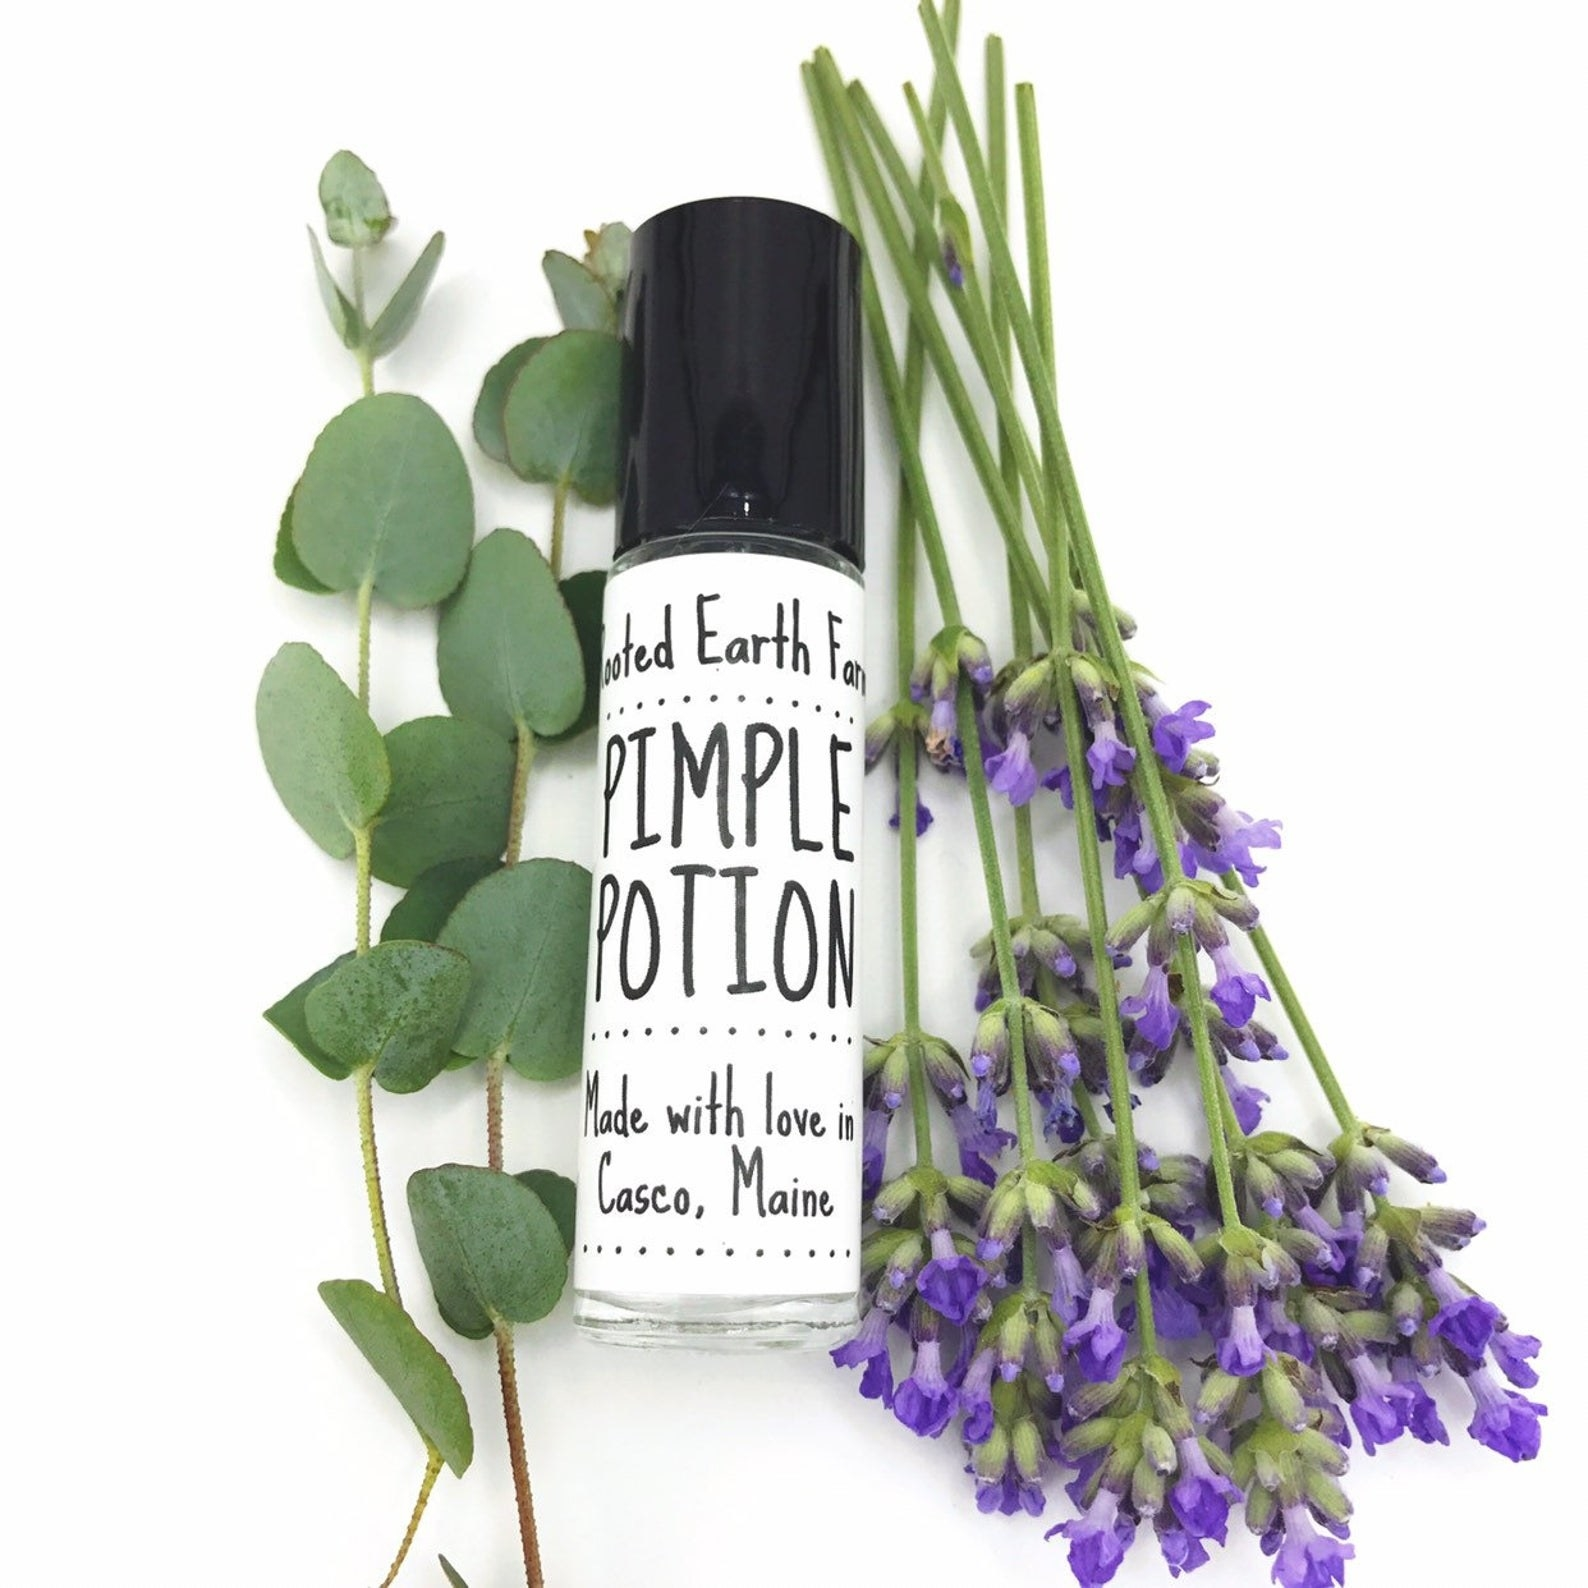 Bottle of Pimple Potion from RootedEarth